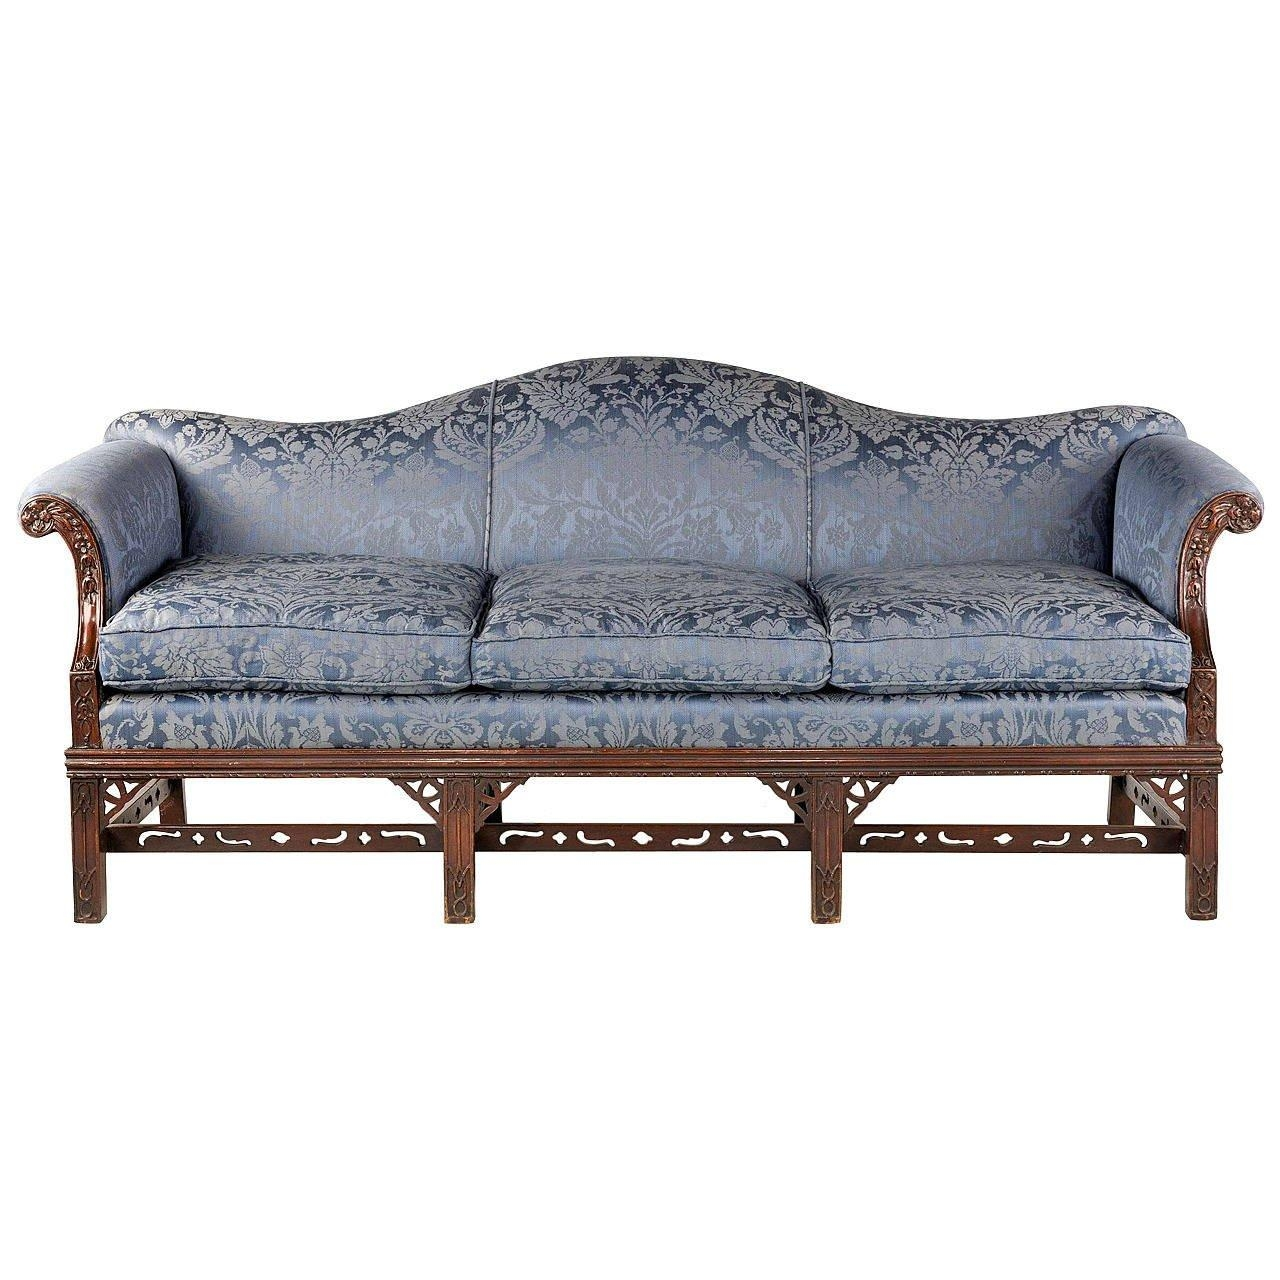 Chippendale Style Mahogany Framed Camel Back Sofa At 1Stdibs With Chippendale Camelback Sofas (Image 8 of 20)